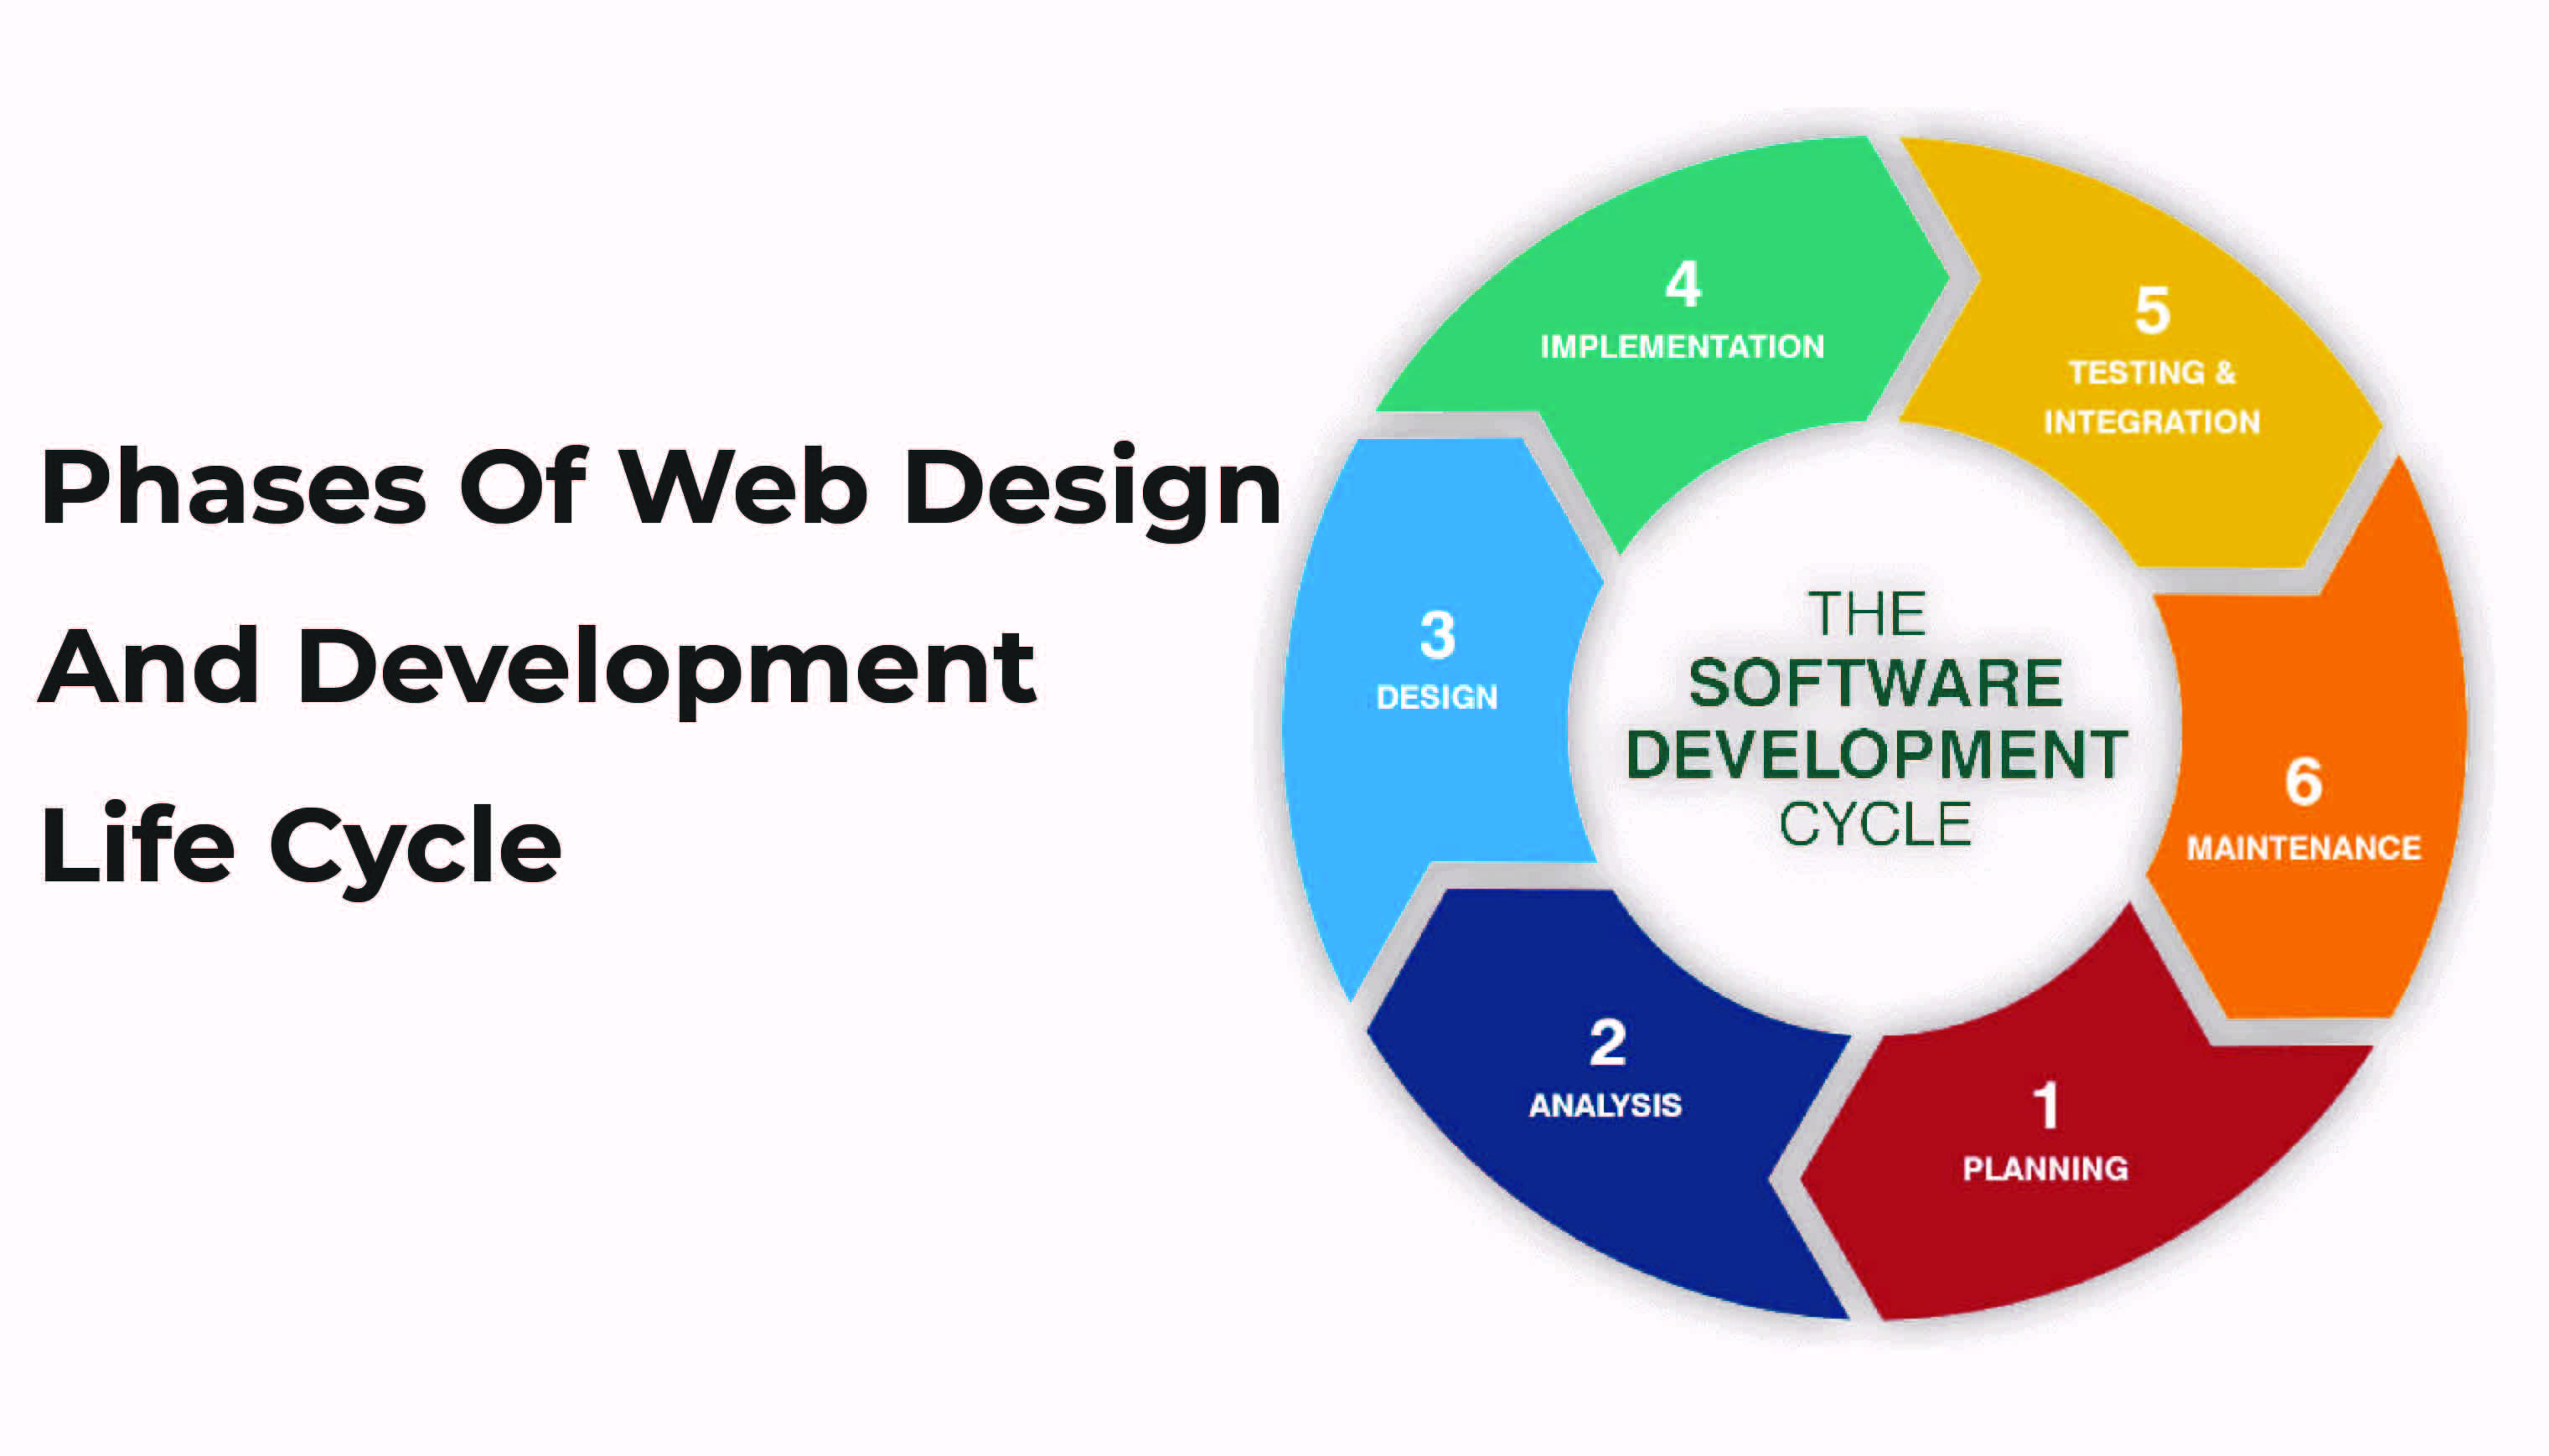 7 Phases Of Web Design And Development Life Cycle